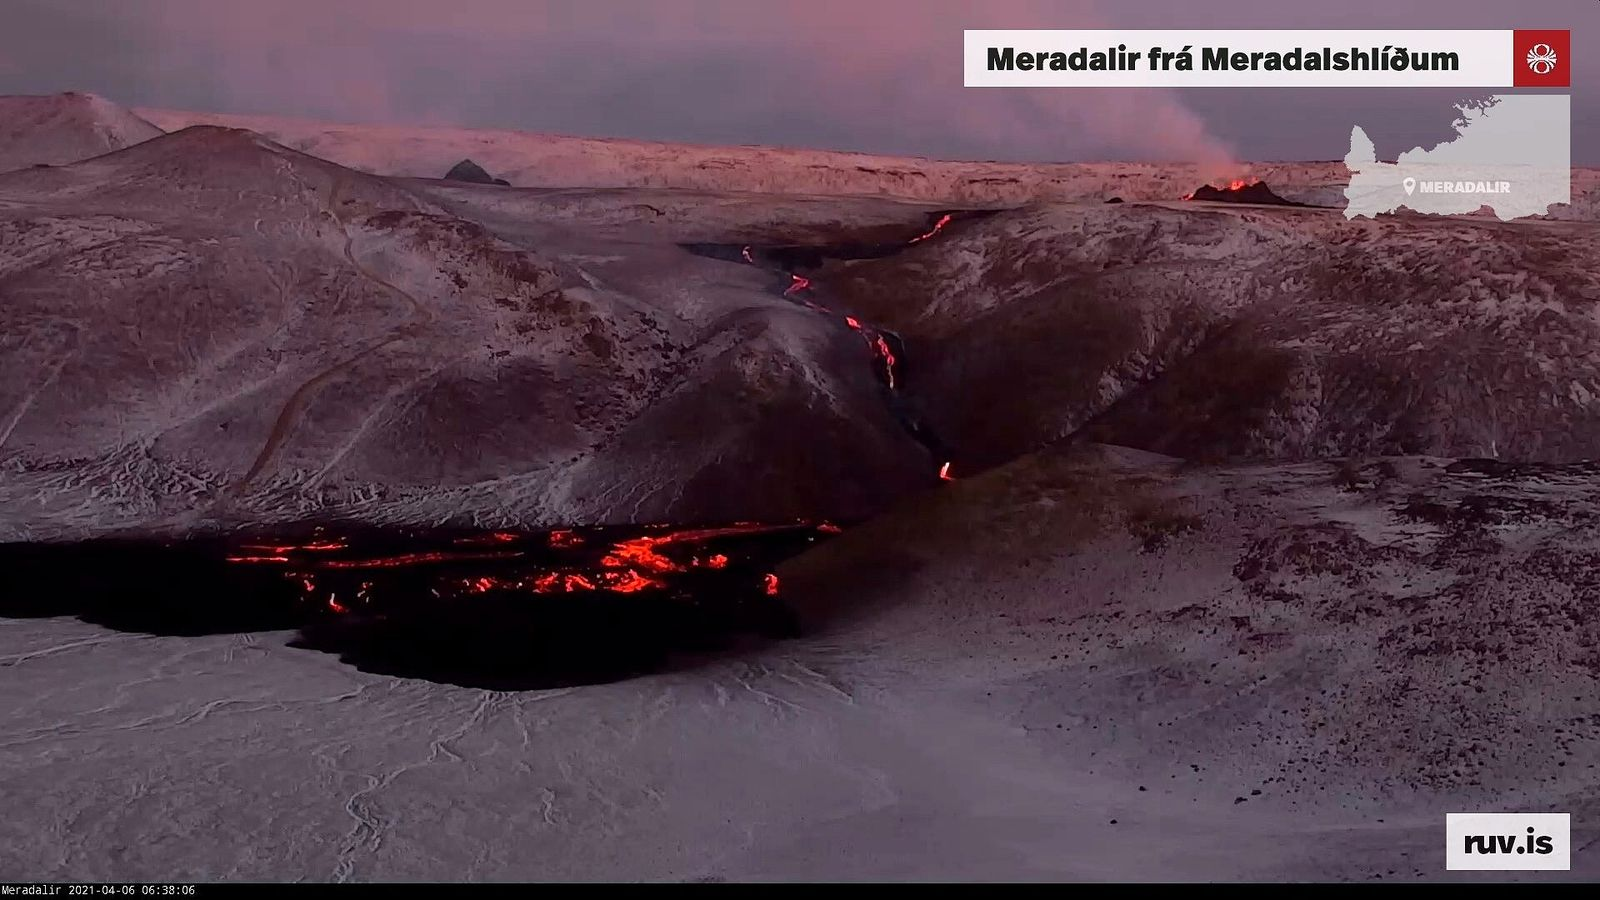 Meradalur - lava flow and delta during the night and on 04.06.2021 / 06:38 - (new) webcam RUV - one click to enlarge